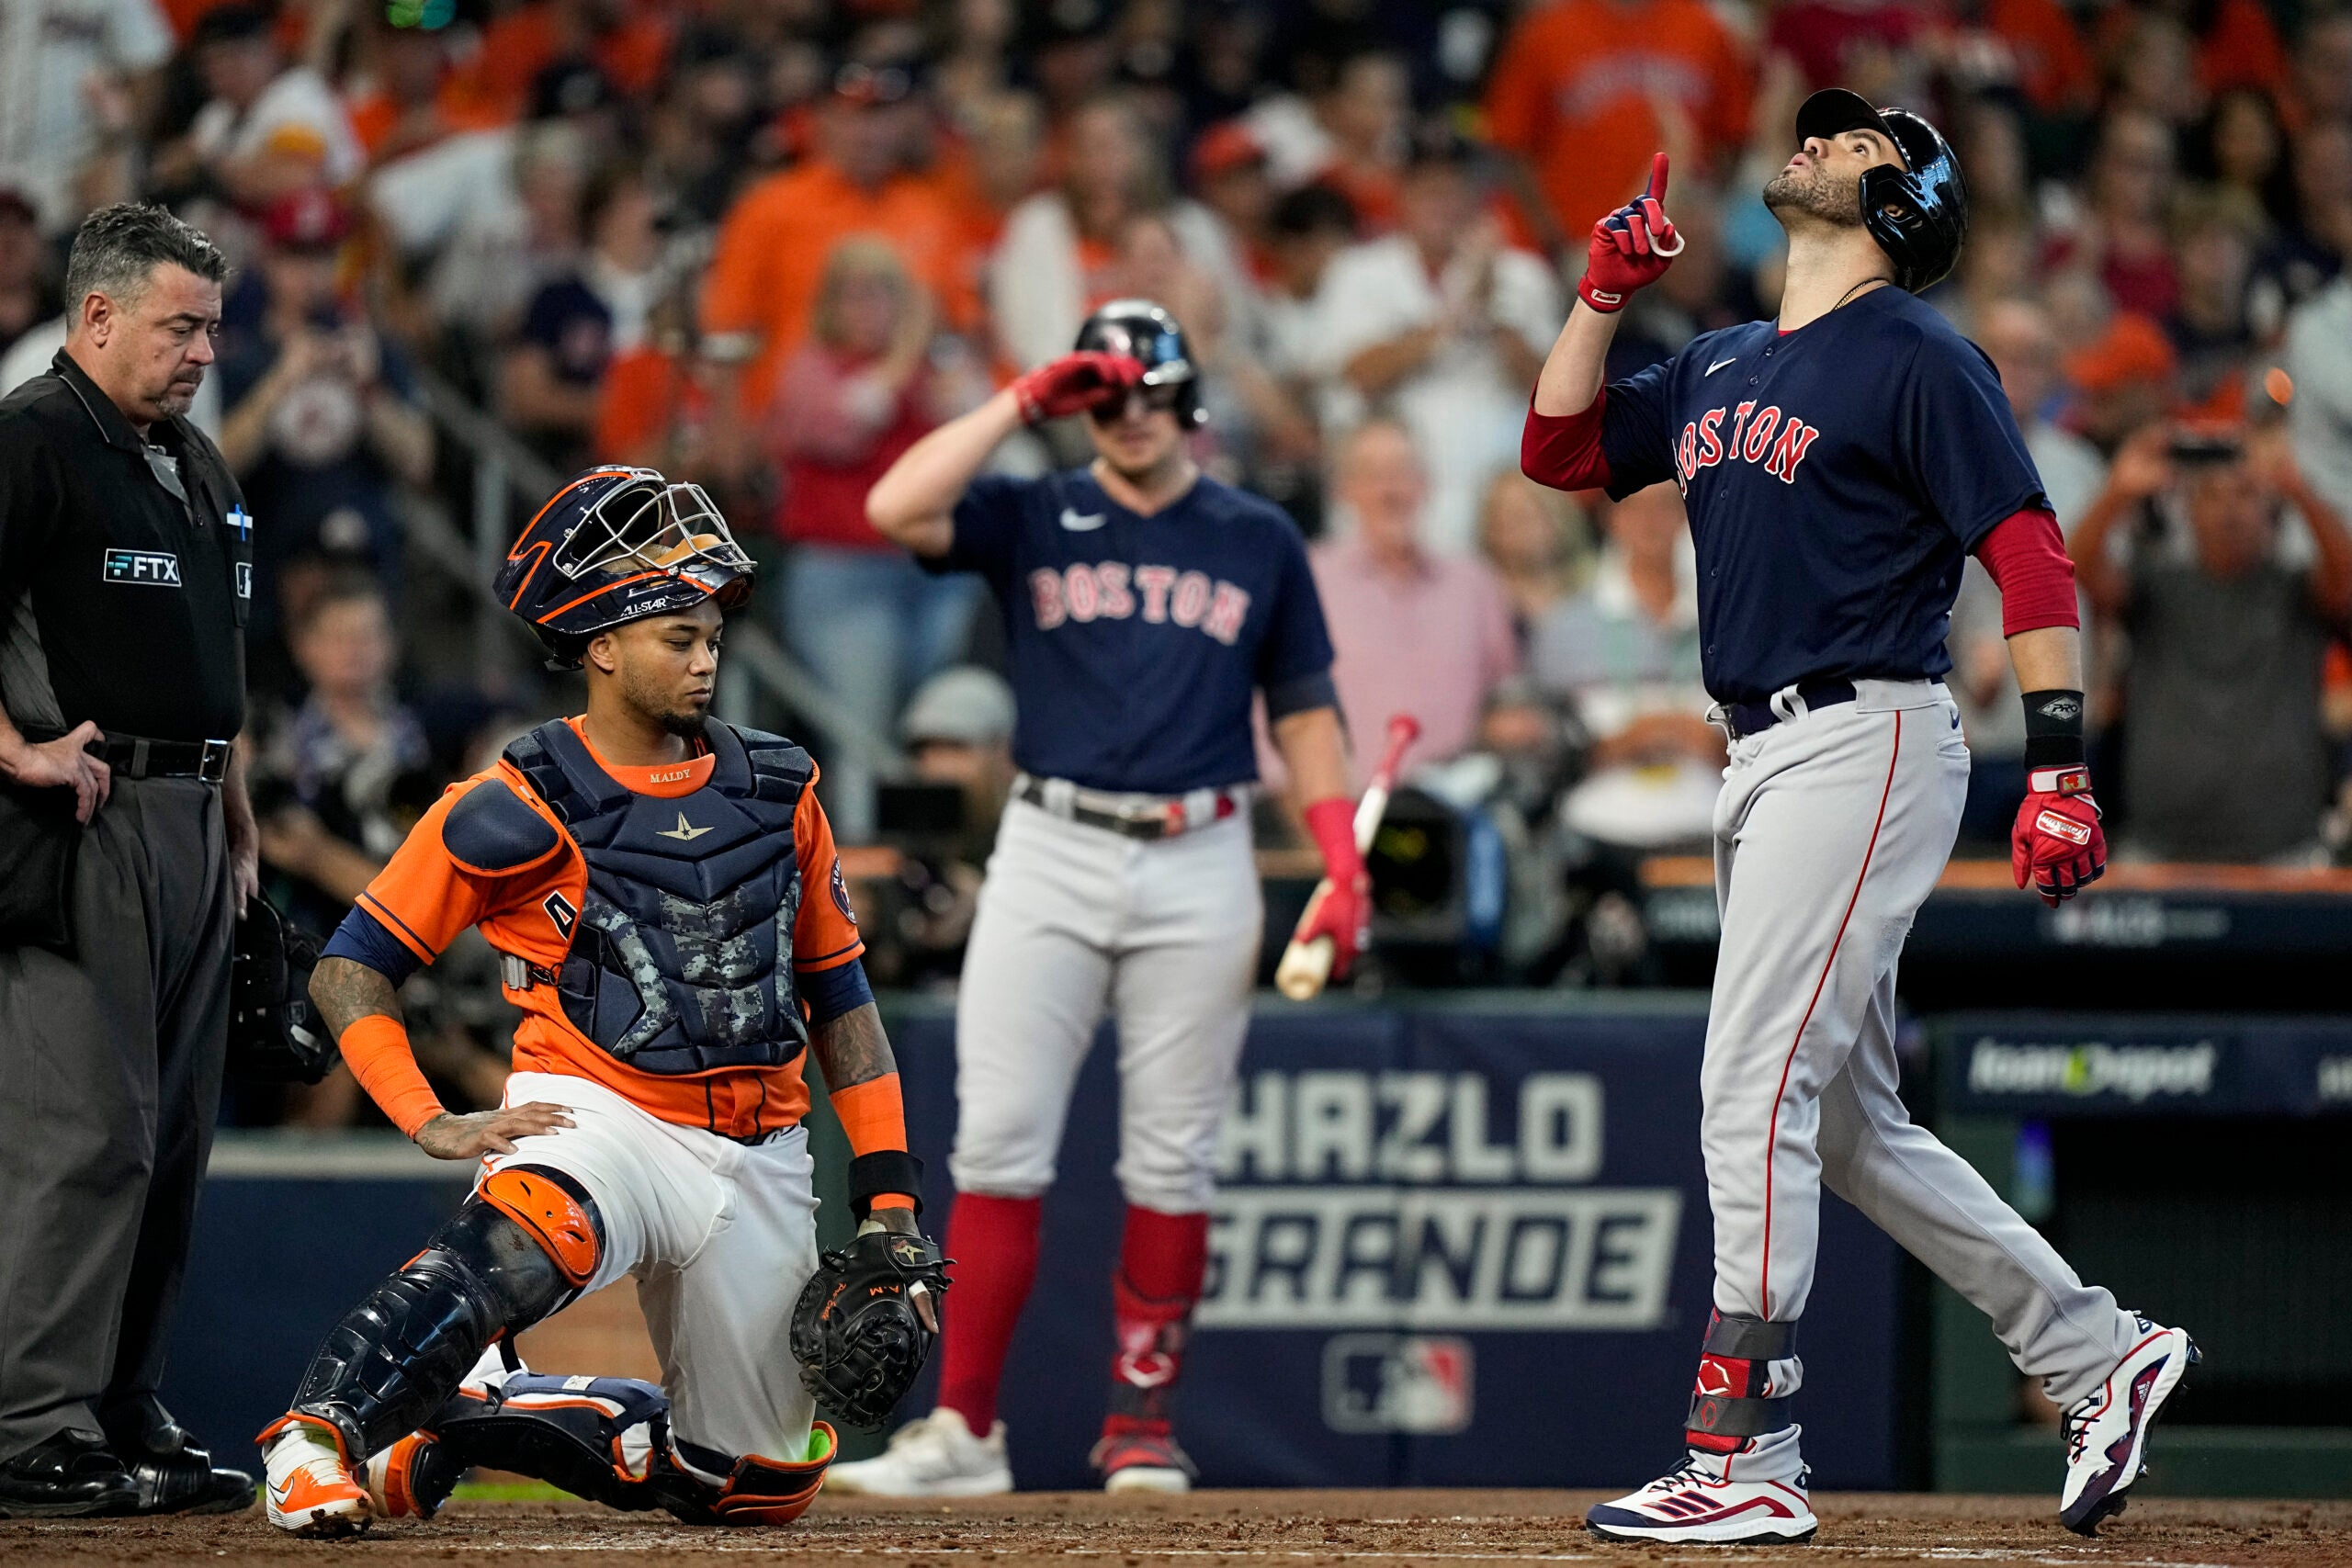 ALCS Red Sox Astros Baseball 95291 616b3ade5a99f scaled